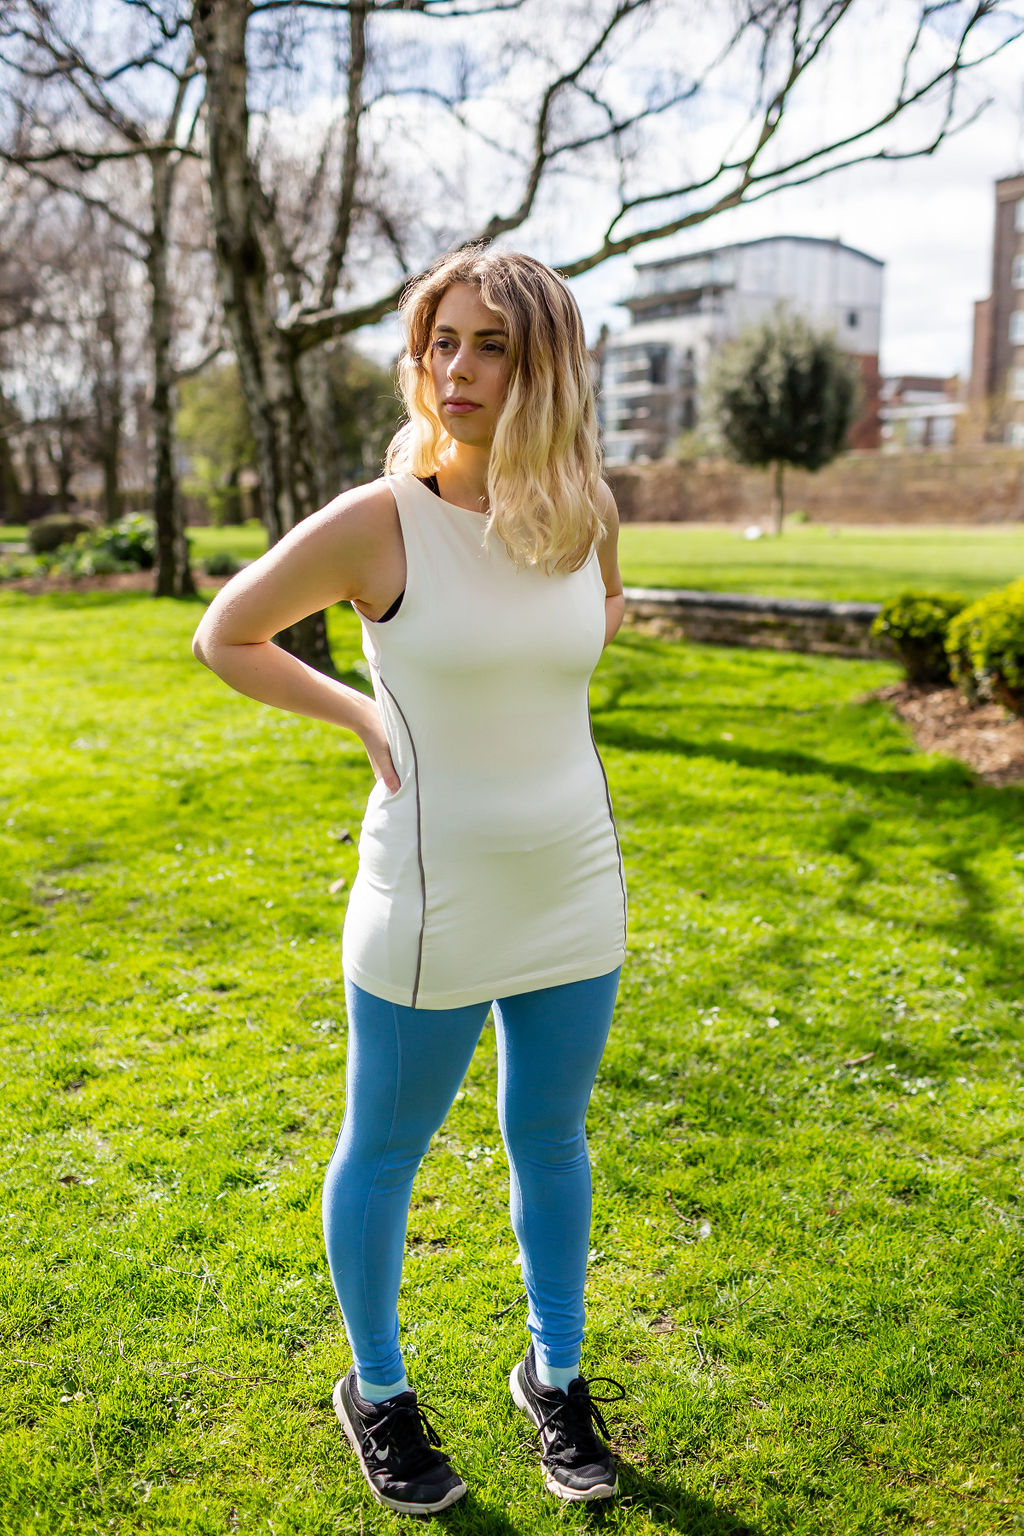 c40bd87ef5 To see more of Asquith's sustainable activewear, check out their website  here